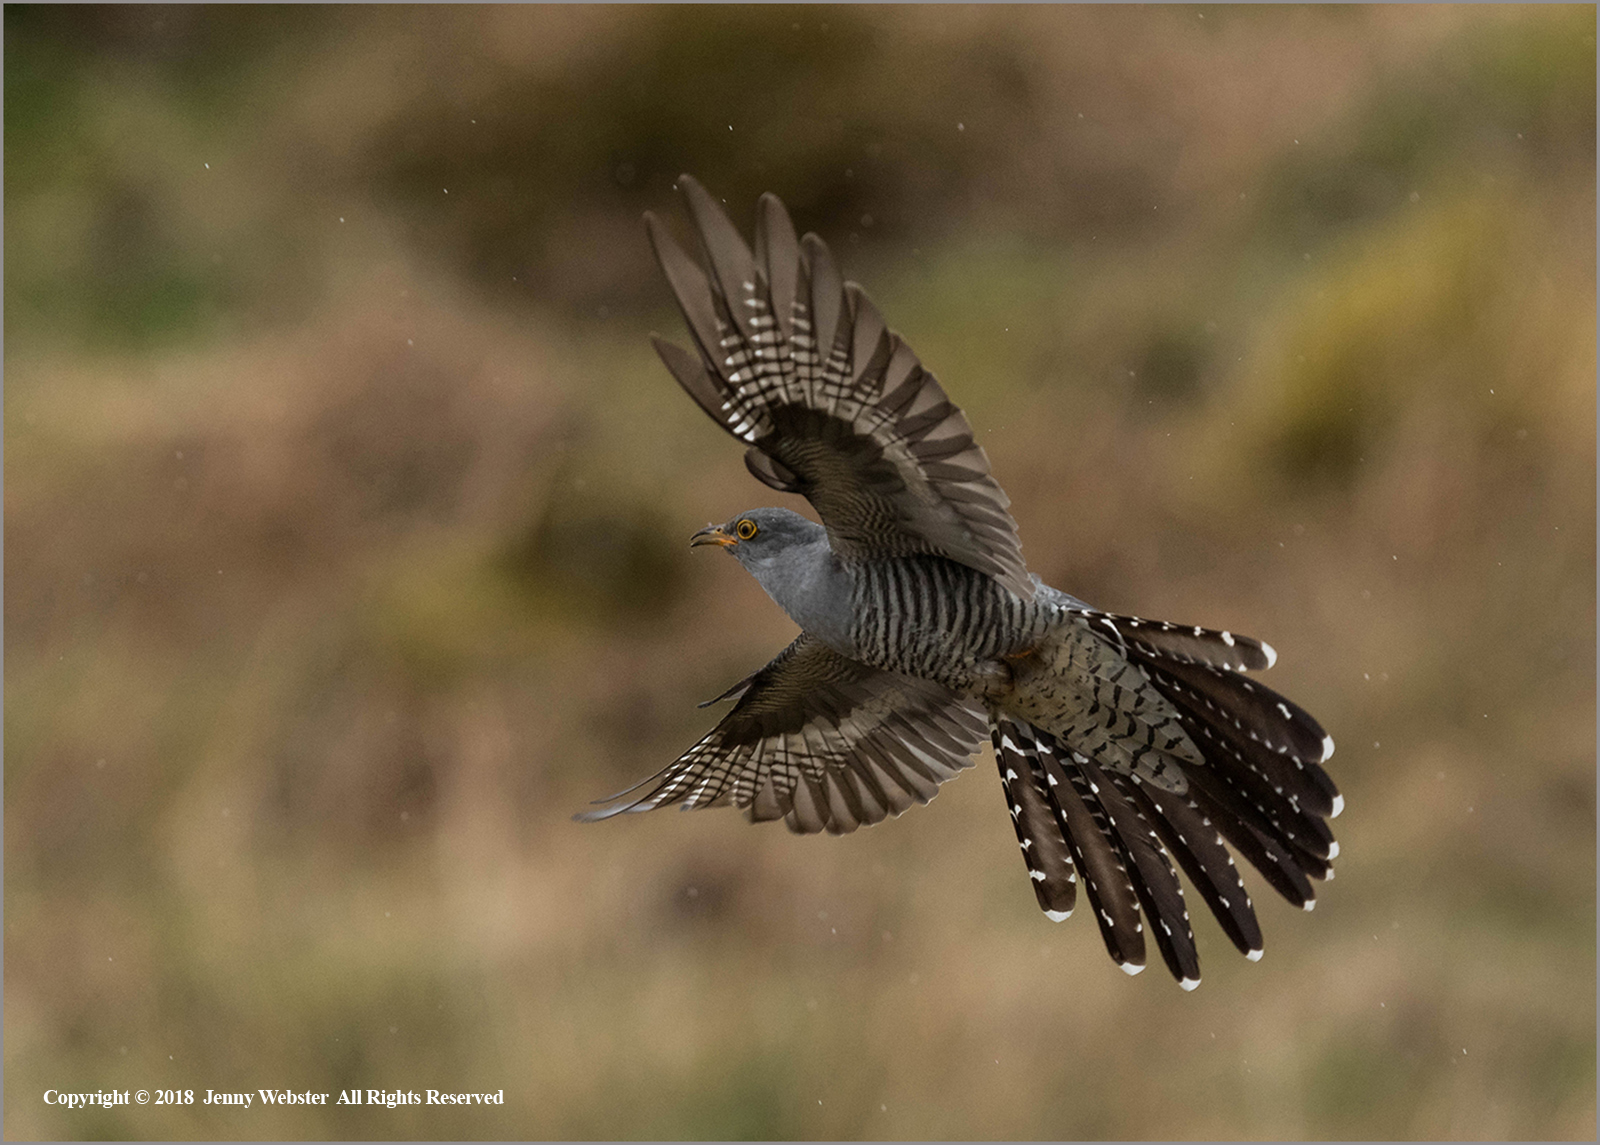 Cuckoo in Flight in the Rain by Jenny Webster